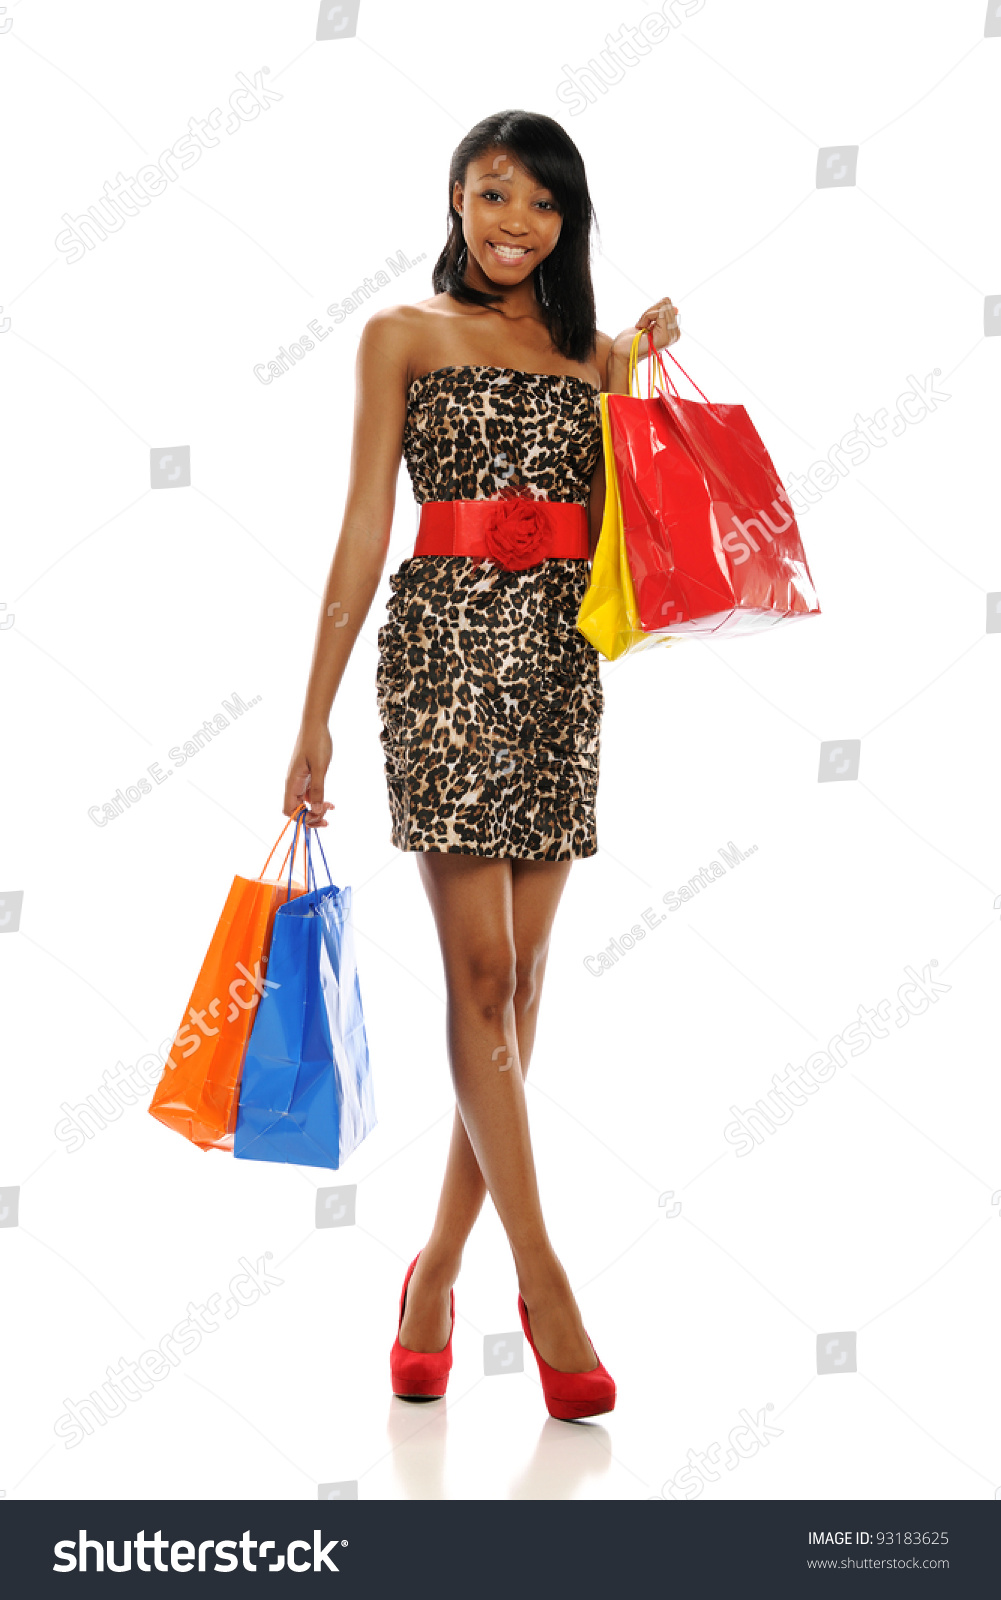 Woman posing with shopping bags isolated on white background full - Young Black Woman With Shopping Bags Isolated On A White Background